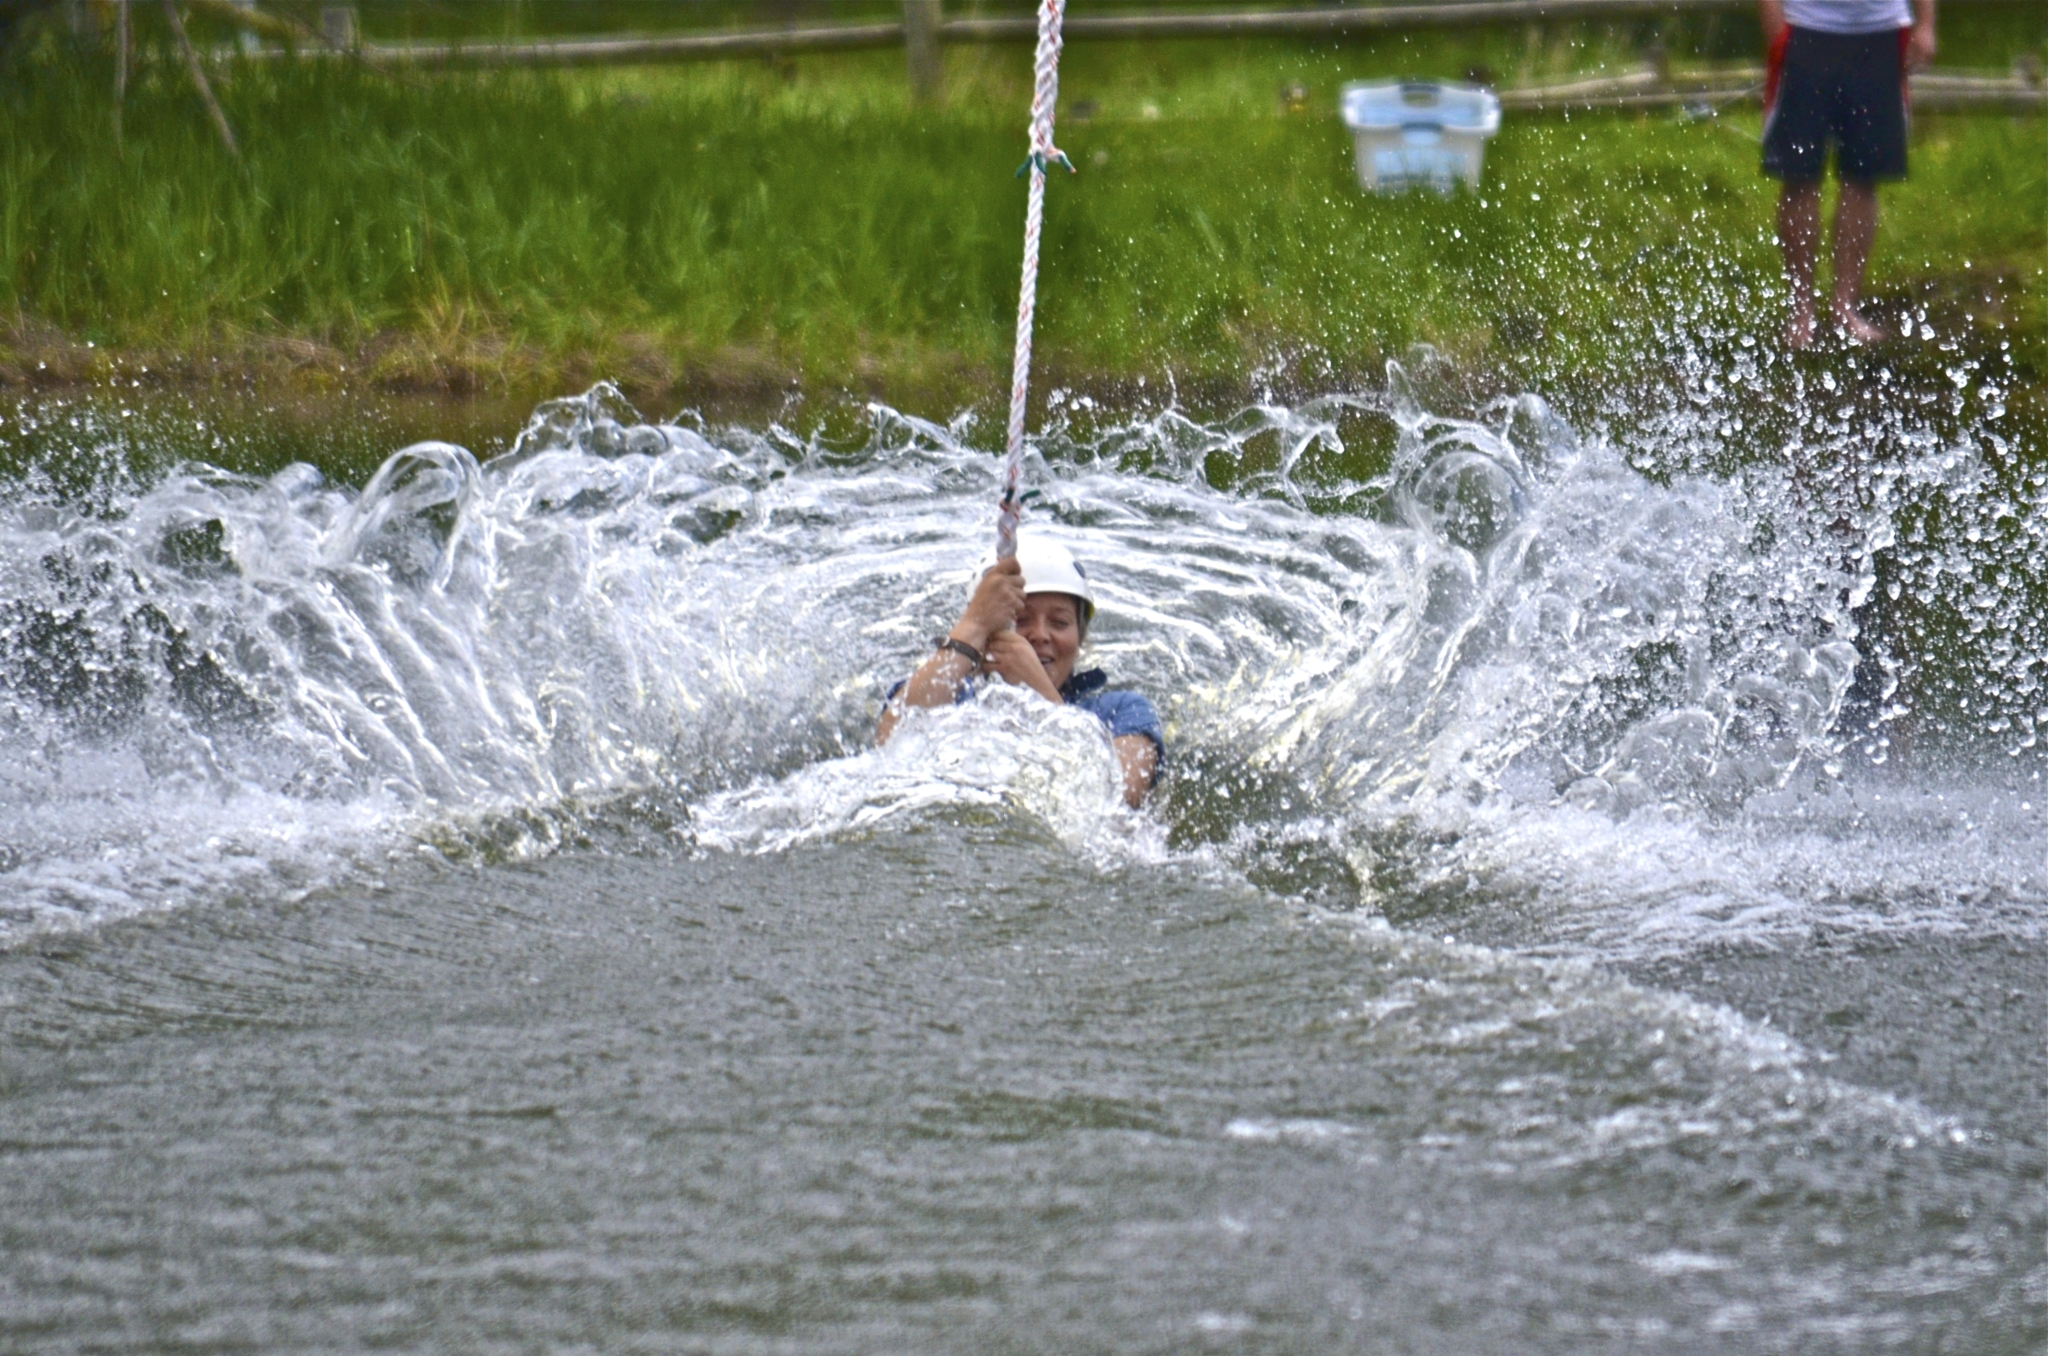 Person splashing into water from a zipline